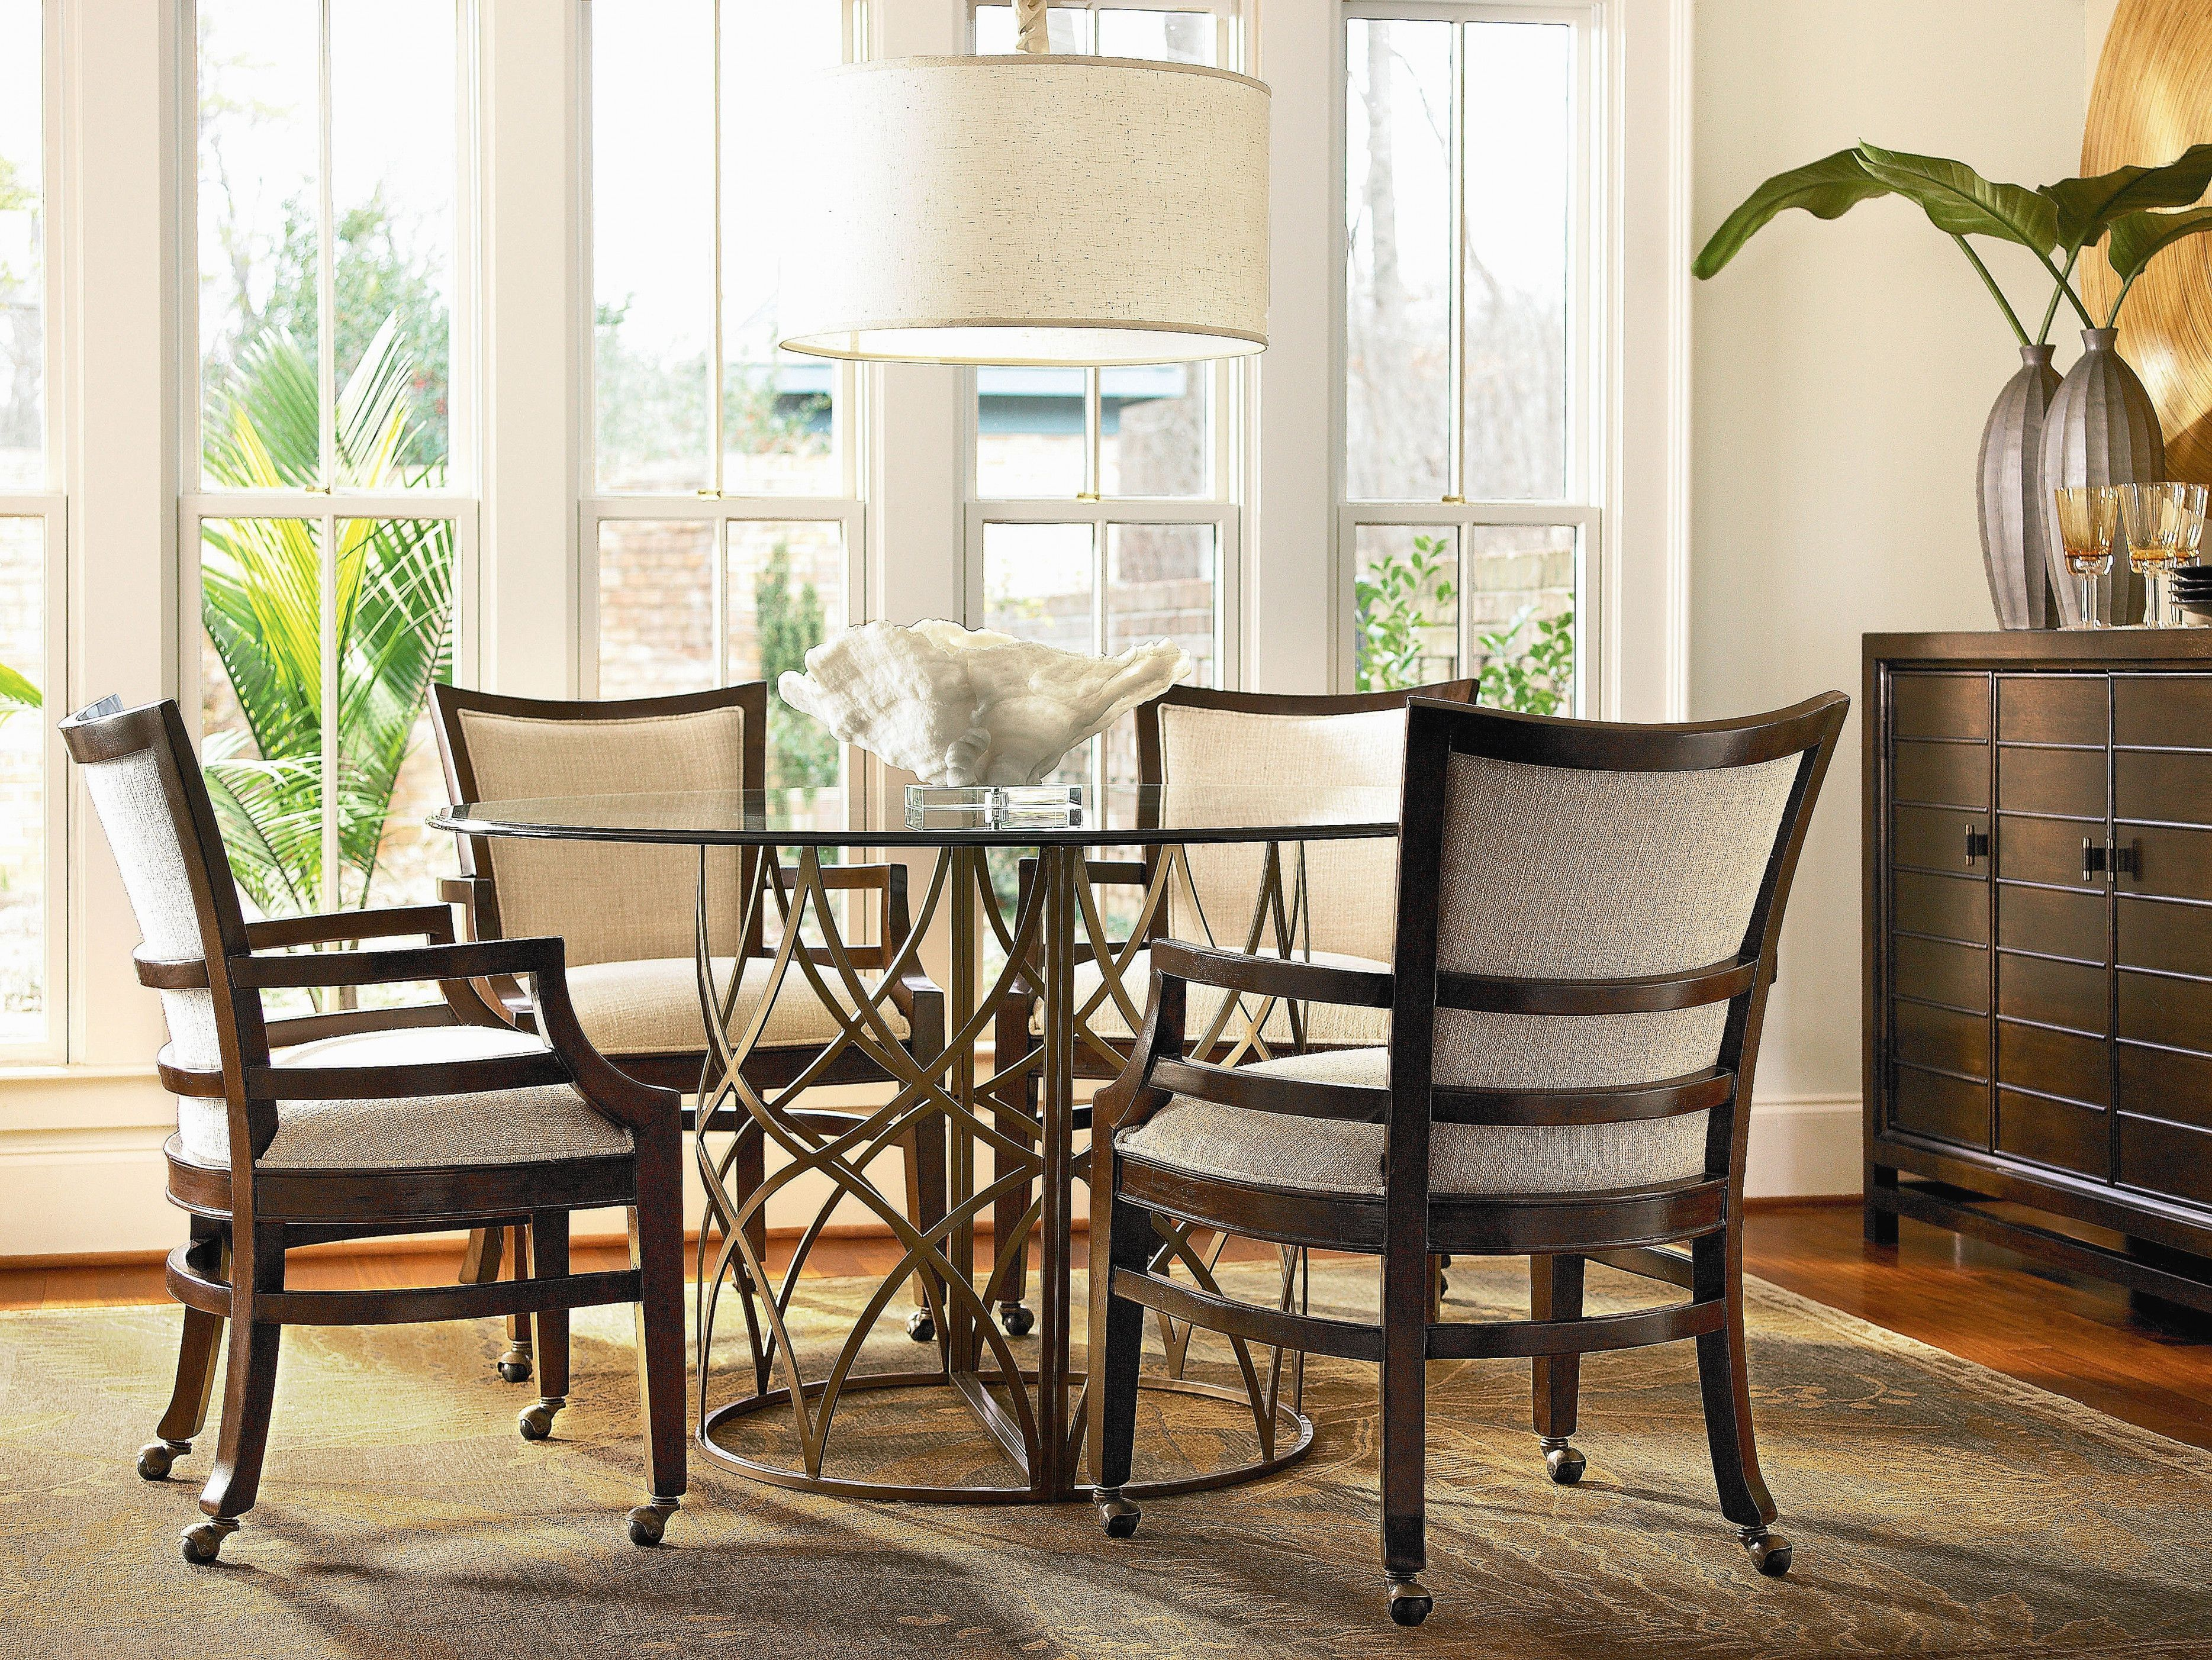 Dining Room Table Chairs Casters Home Decorating Interior Design